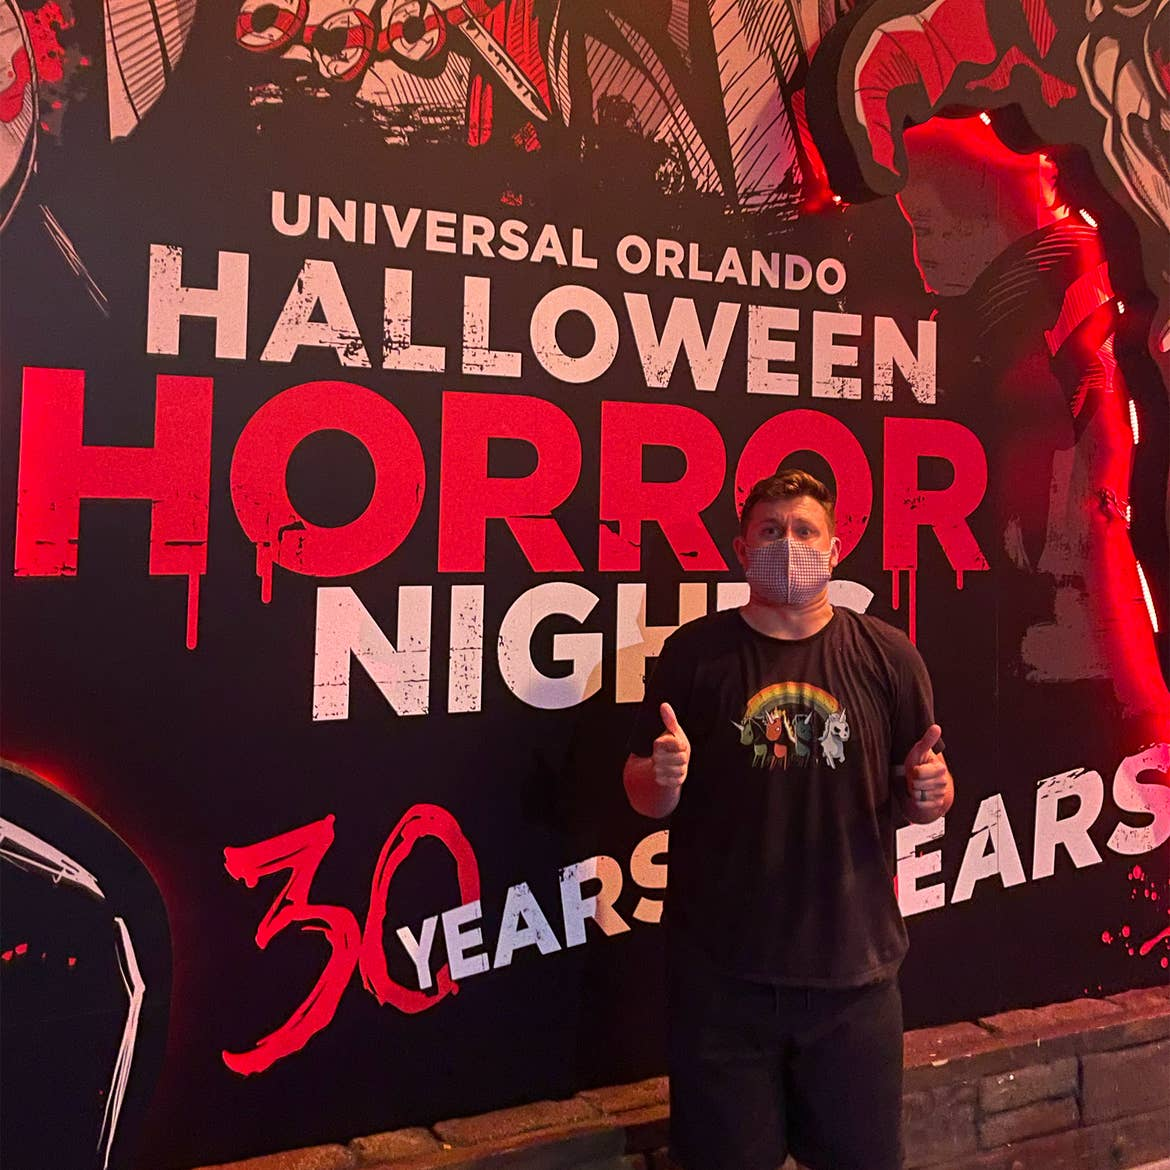 A male wearing black t-shirt and shorts stands in front of a Halloween mural.